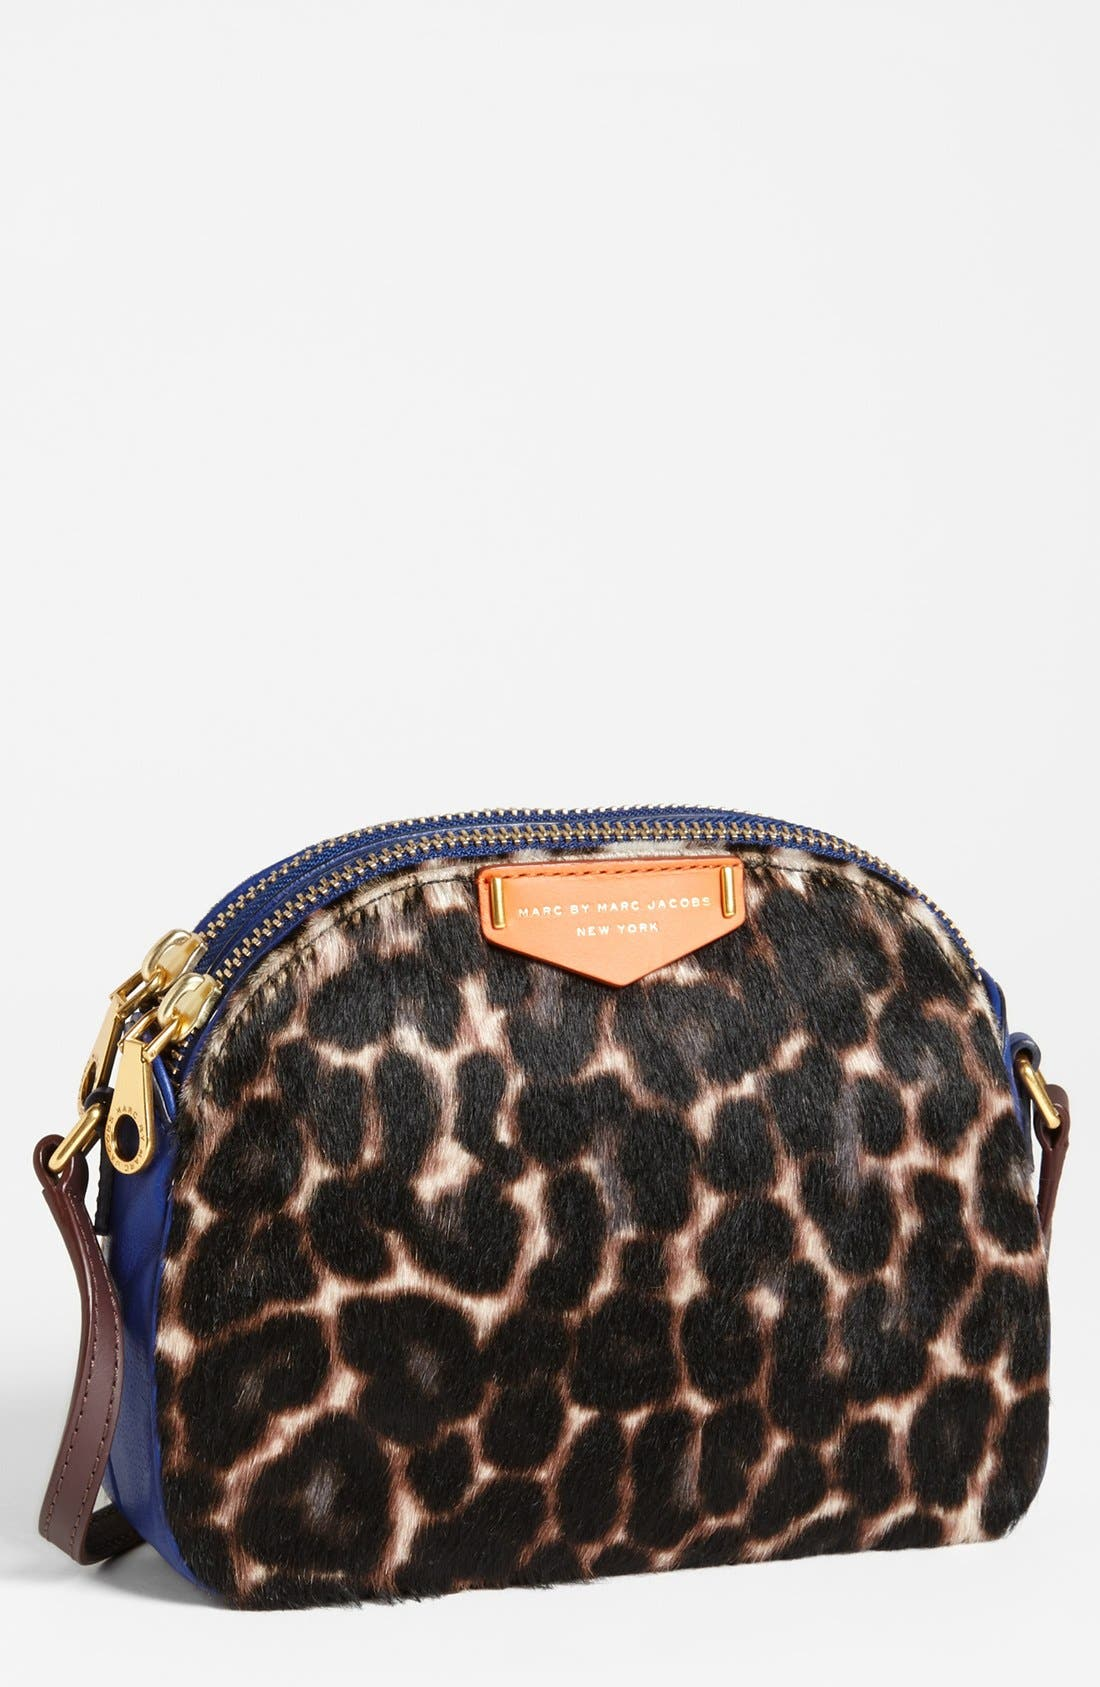 Alternate Image 1 Selected - MARC BY MARC JACOBS 'Lola' Calf Hair Crossbody Bag